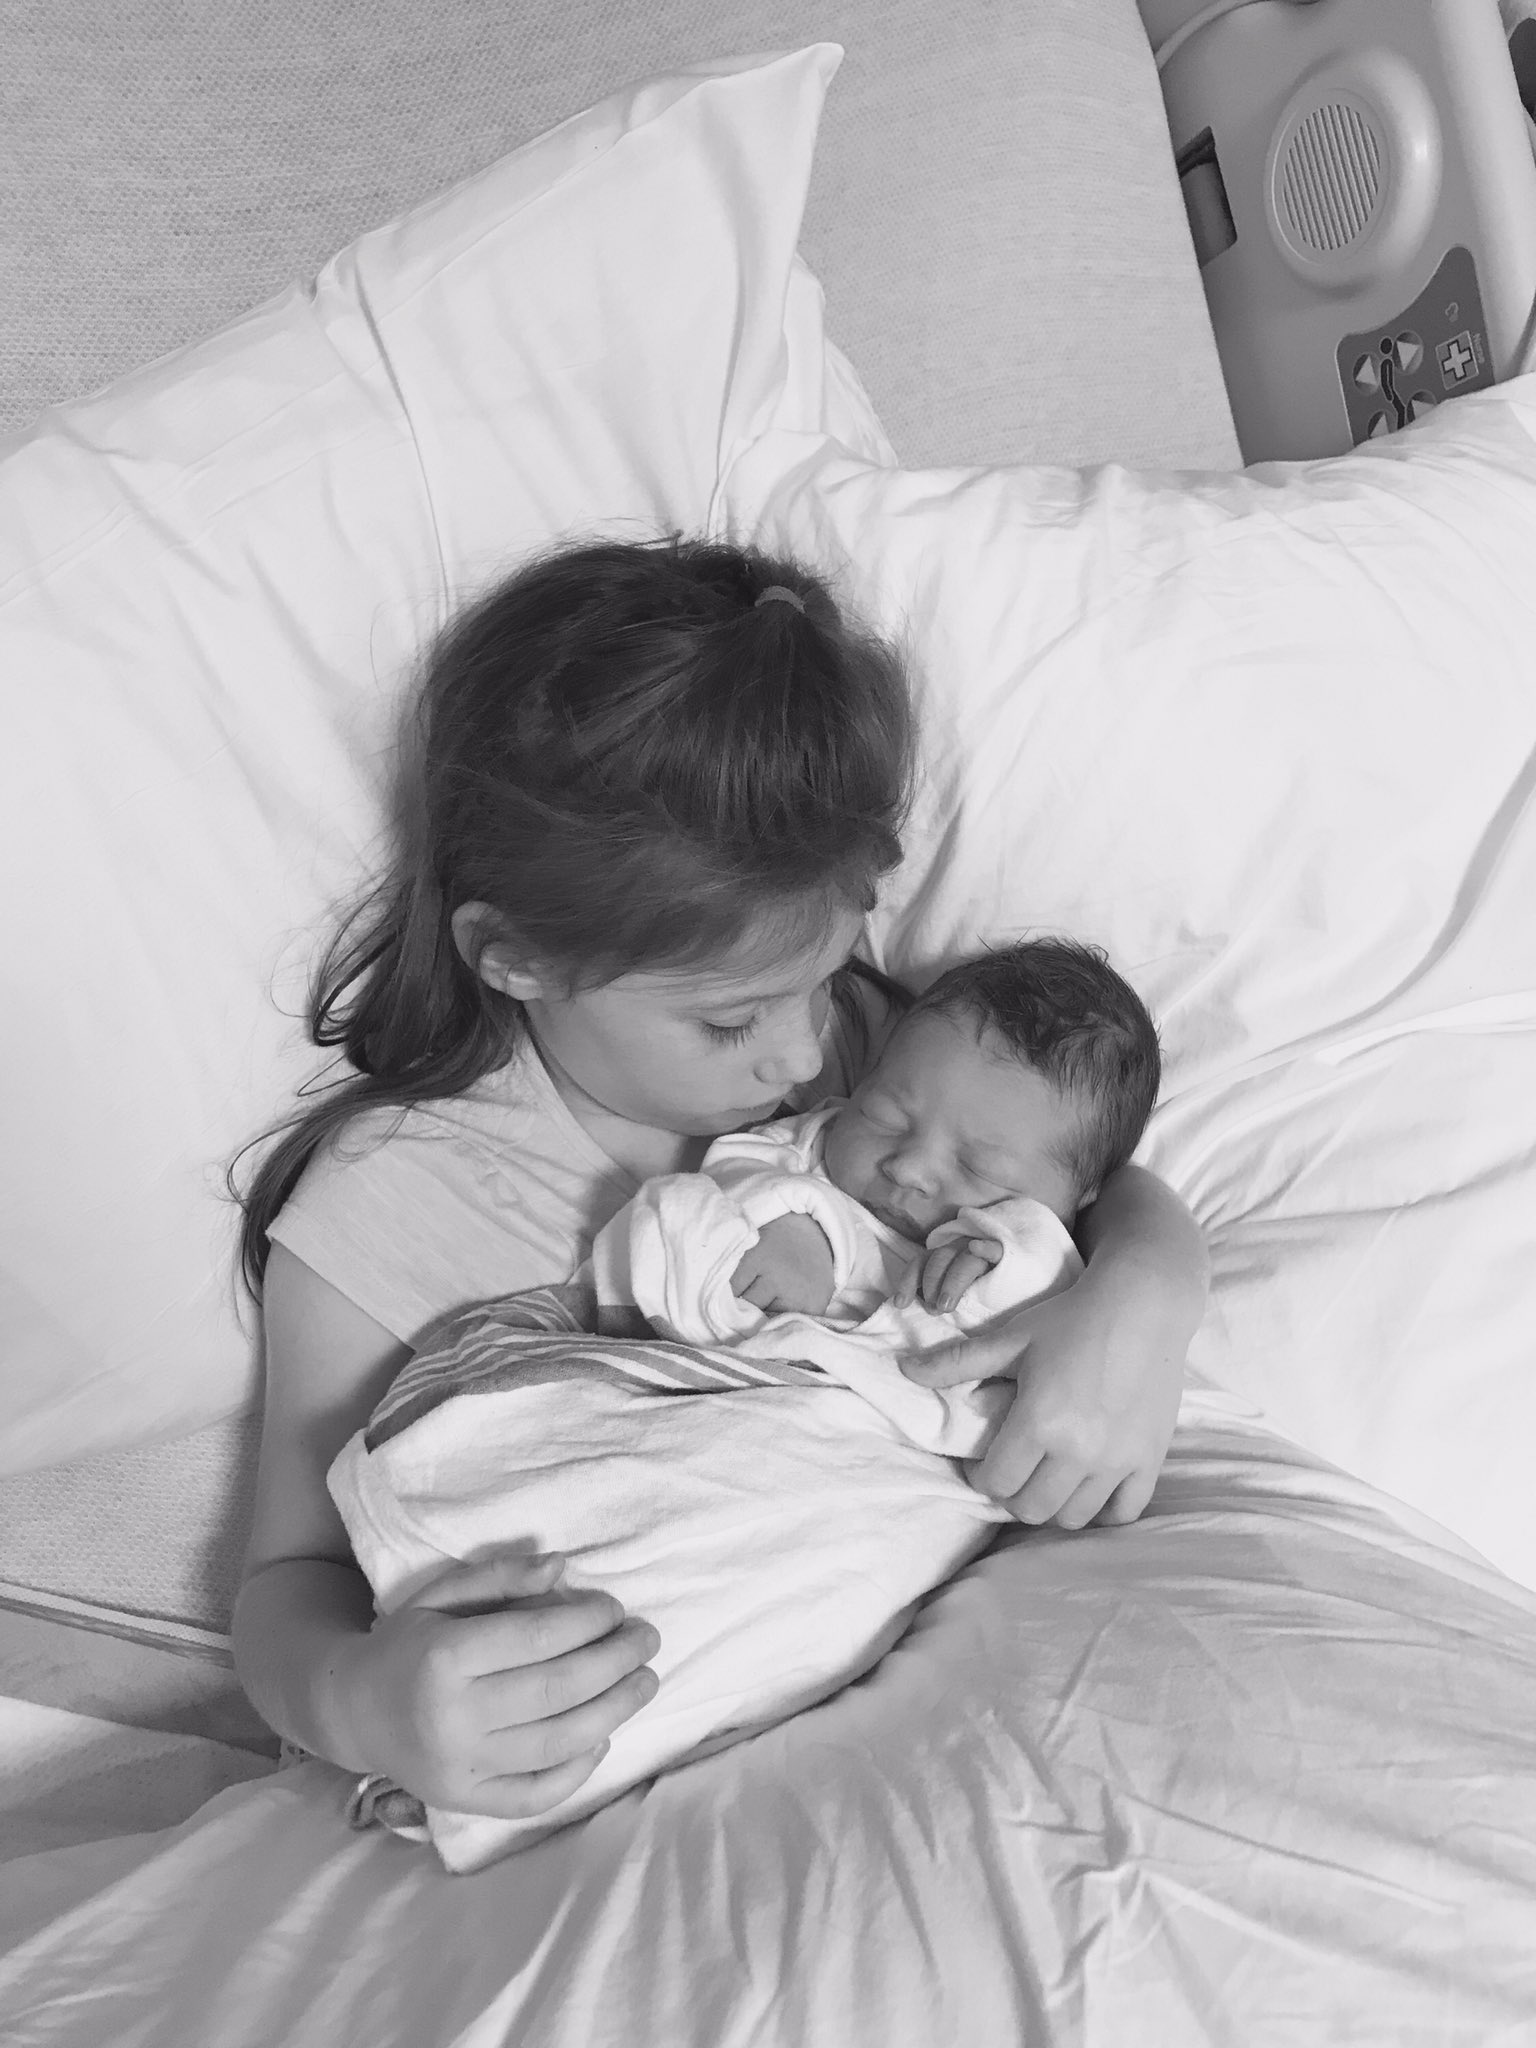 Taylor has a new little sister. Welcome Molly Gold Hamlin. Est 8-15-17 https://t.co/ZKQ1X8Maa0